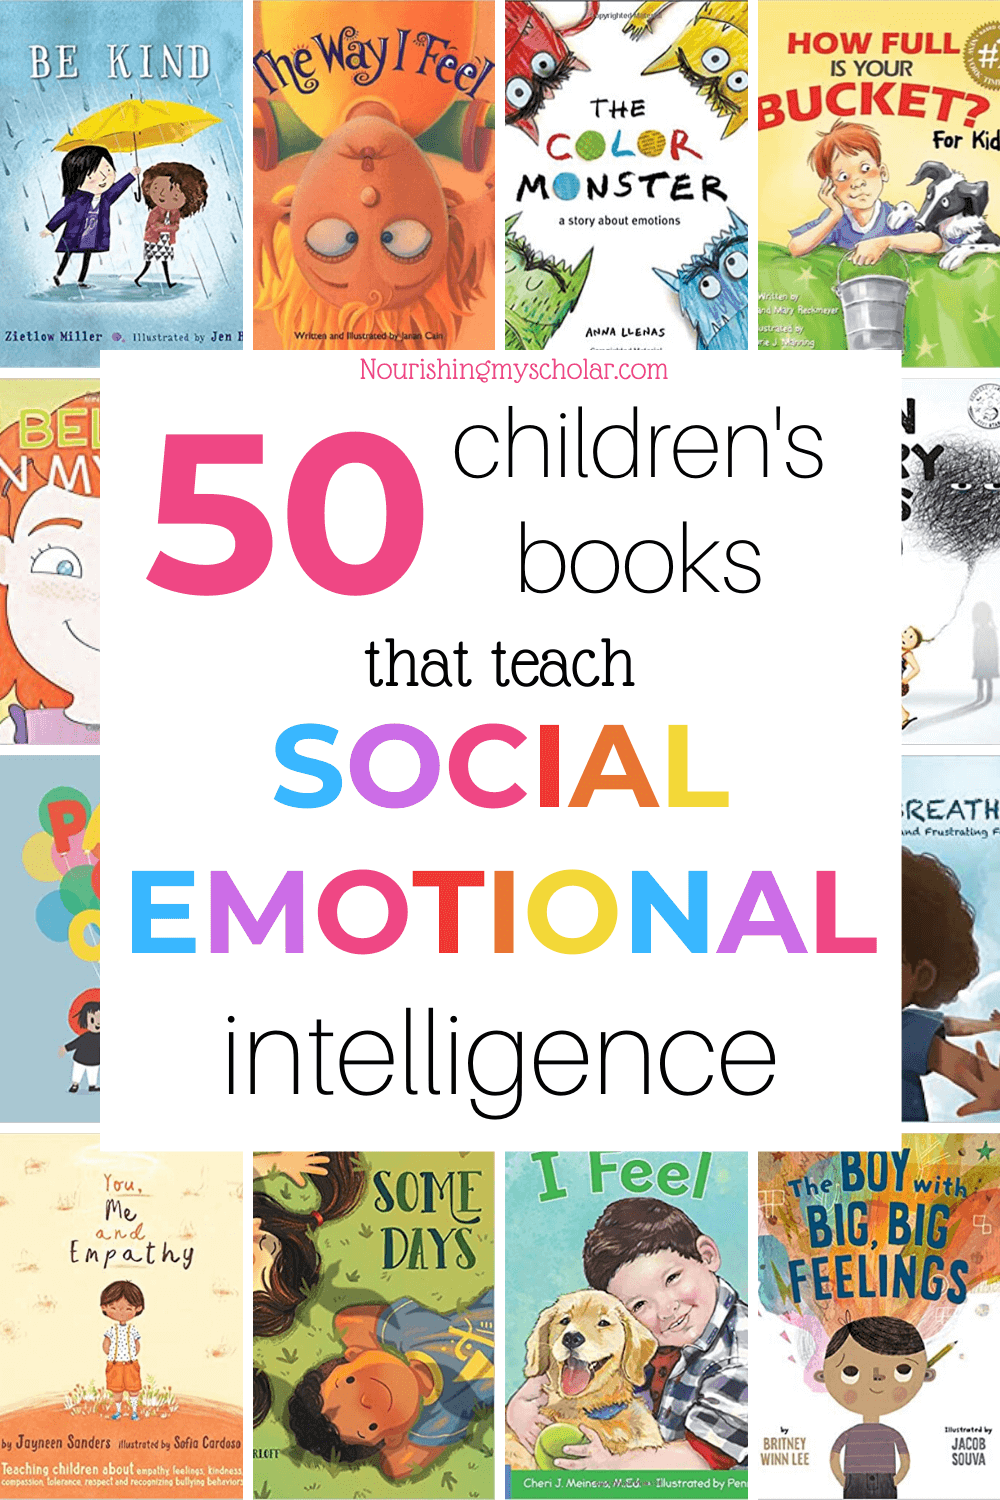 50 Children's Books that Teach Social-Emotional Intelligence: Social-emotional intelligence is key to teaching our children the skills they need to manage all sorts of different situations. But how can we teach such an important skill? When in doubt my go-to is always books! #kidlit #feelingsbooks #childrensbooks #kidsbooks #socialemotionalintelligence #ihsnet #homeschool